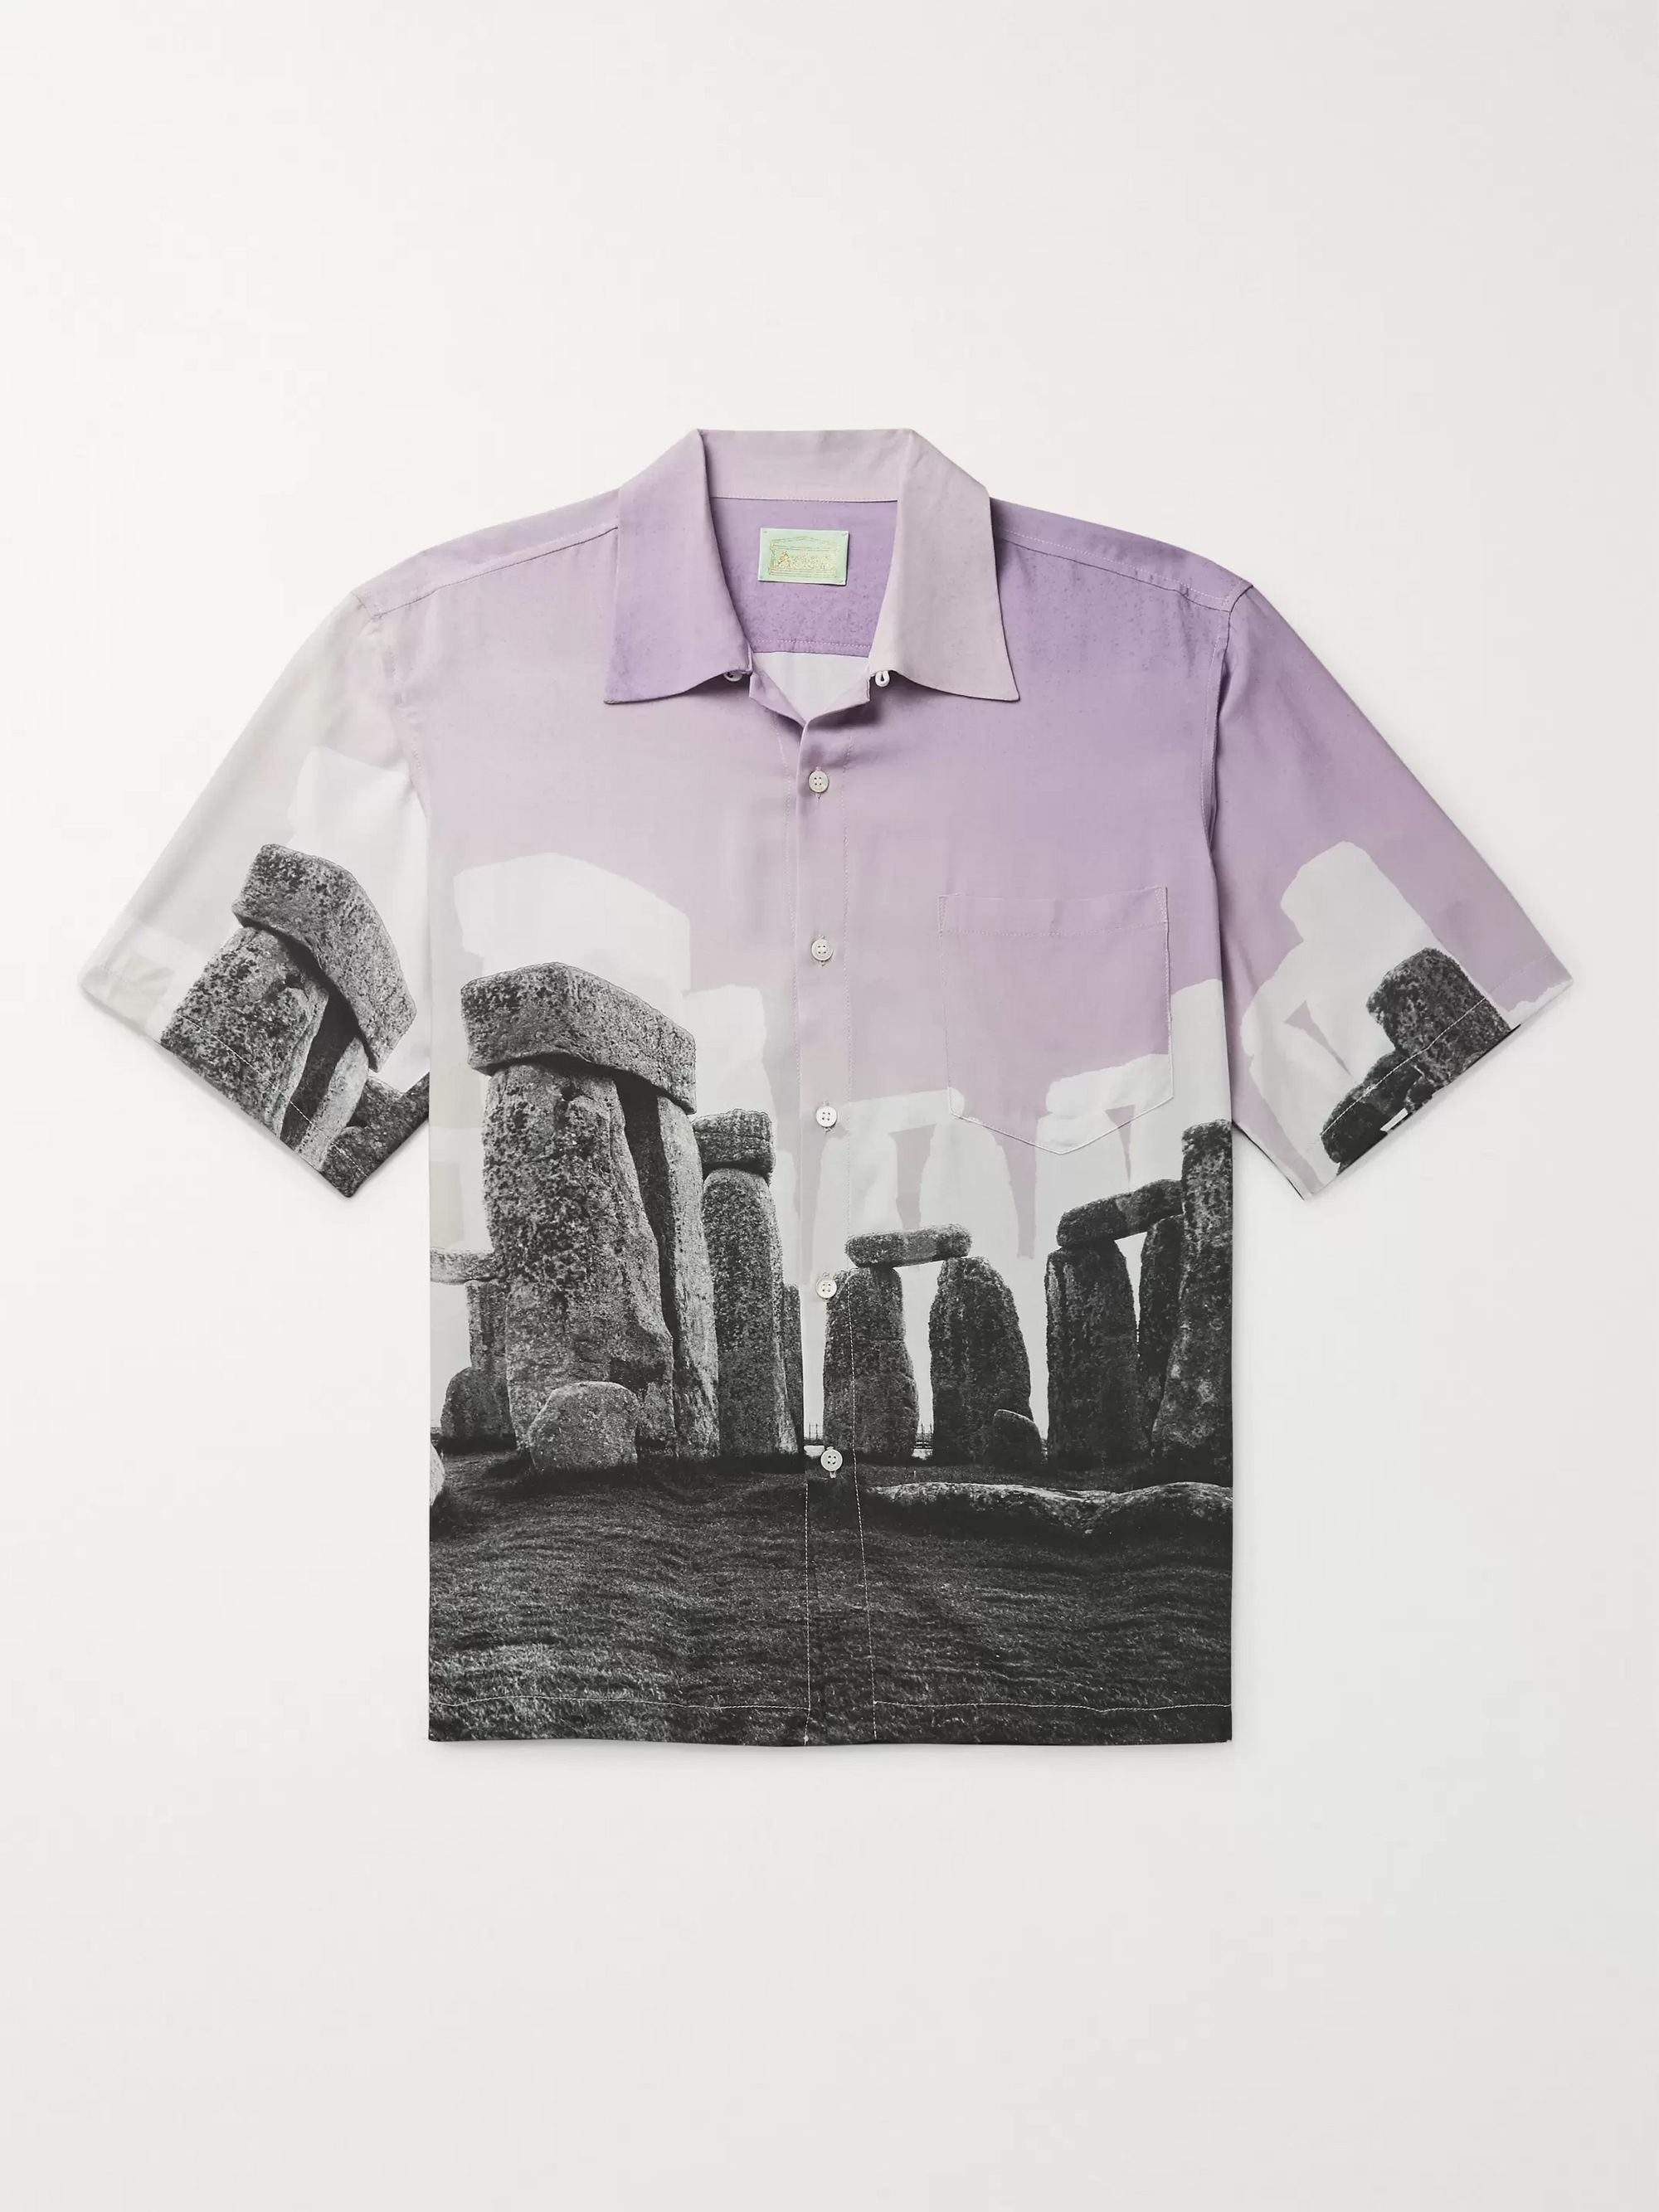 Aries + Jeremy Deller Camp-Collar Printed Woven Shirt